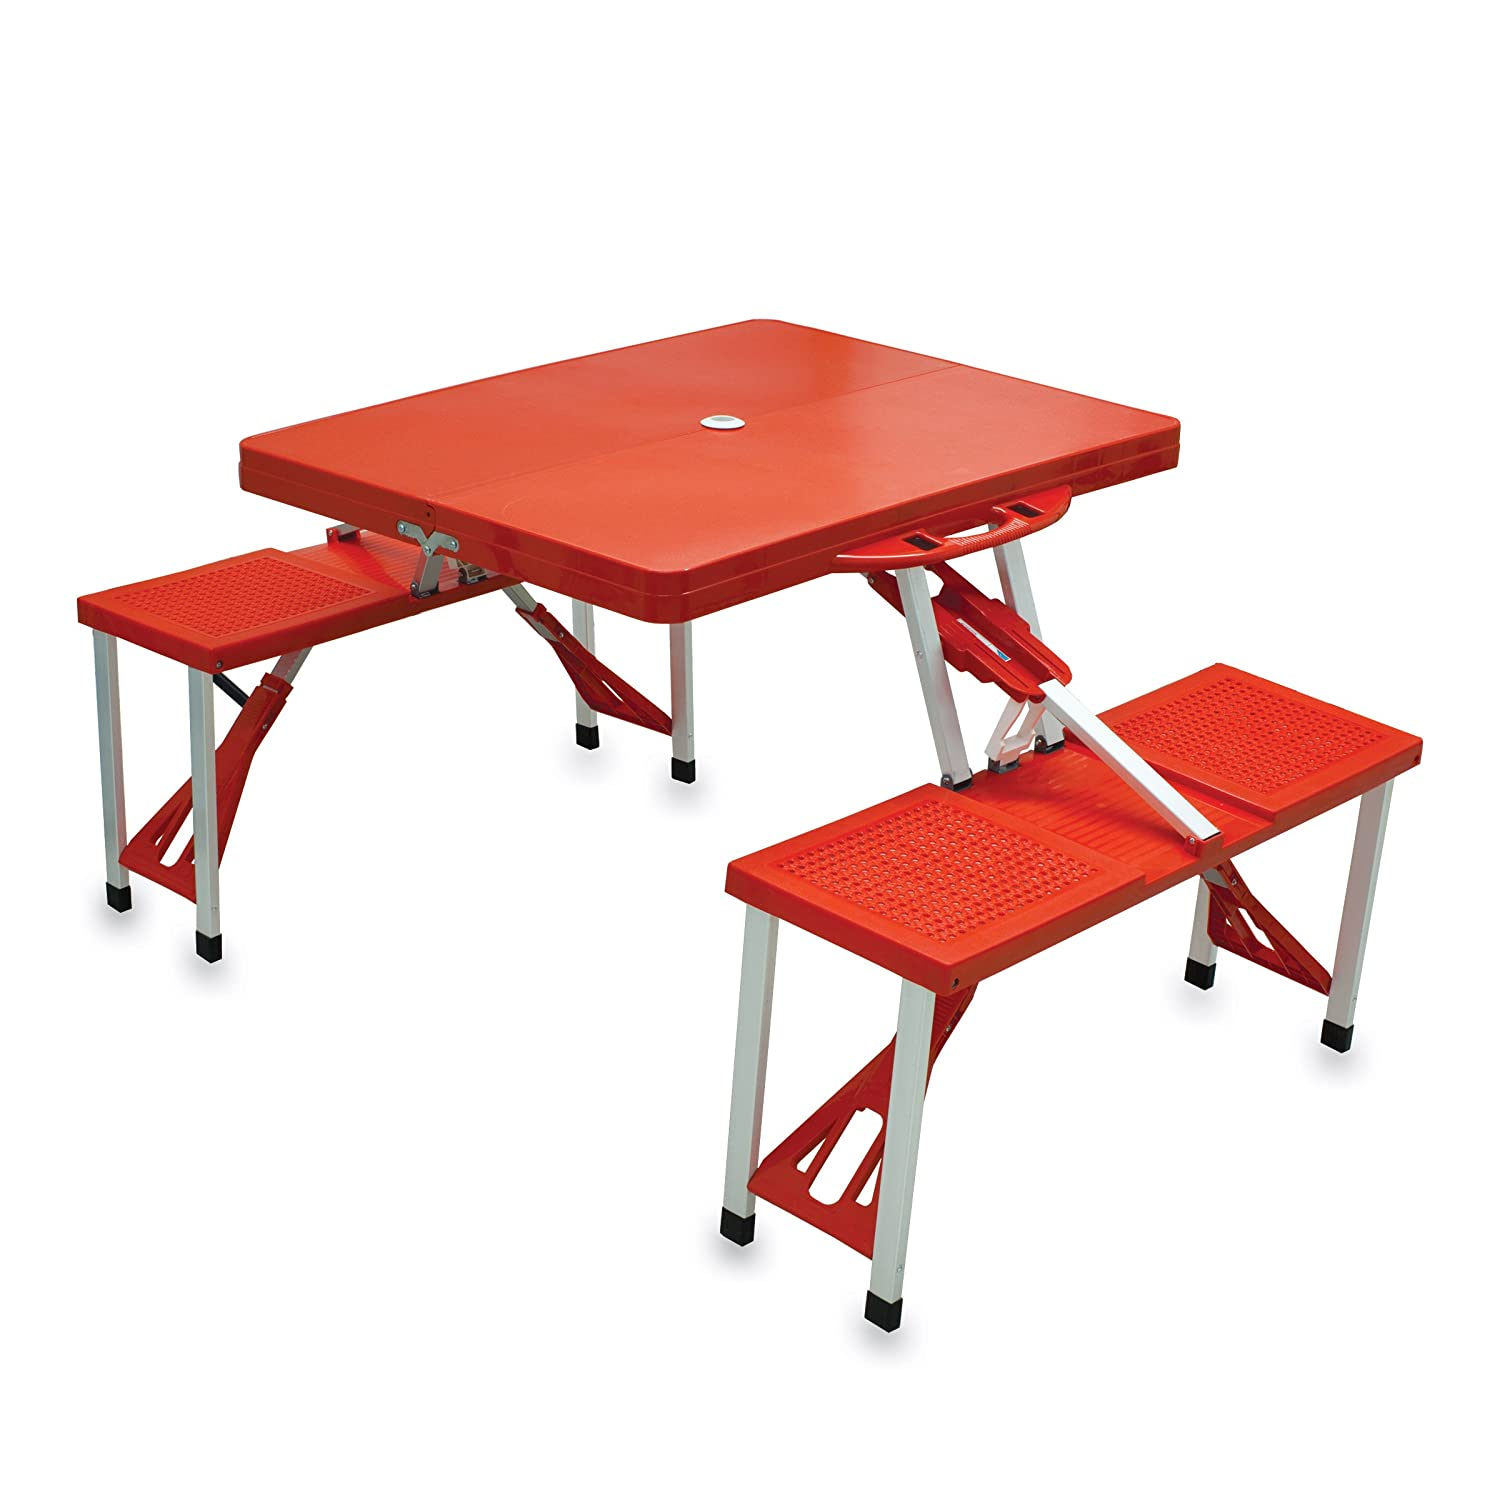 Captivating Amazon.com : Picnic Time U0027Portable Folding Picnic Tableu0027 With Seating For  4, Red : Picnic Basket Sets : Patio, Lawn U0026 Garden